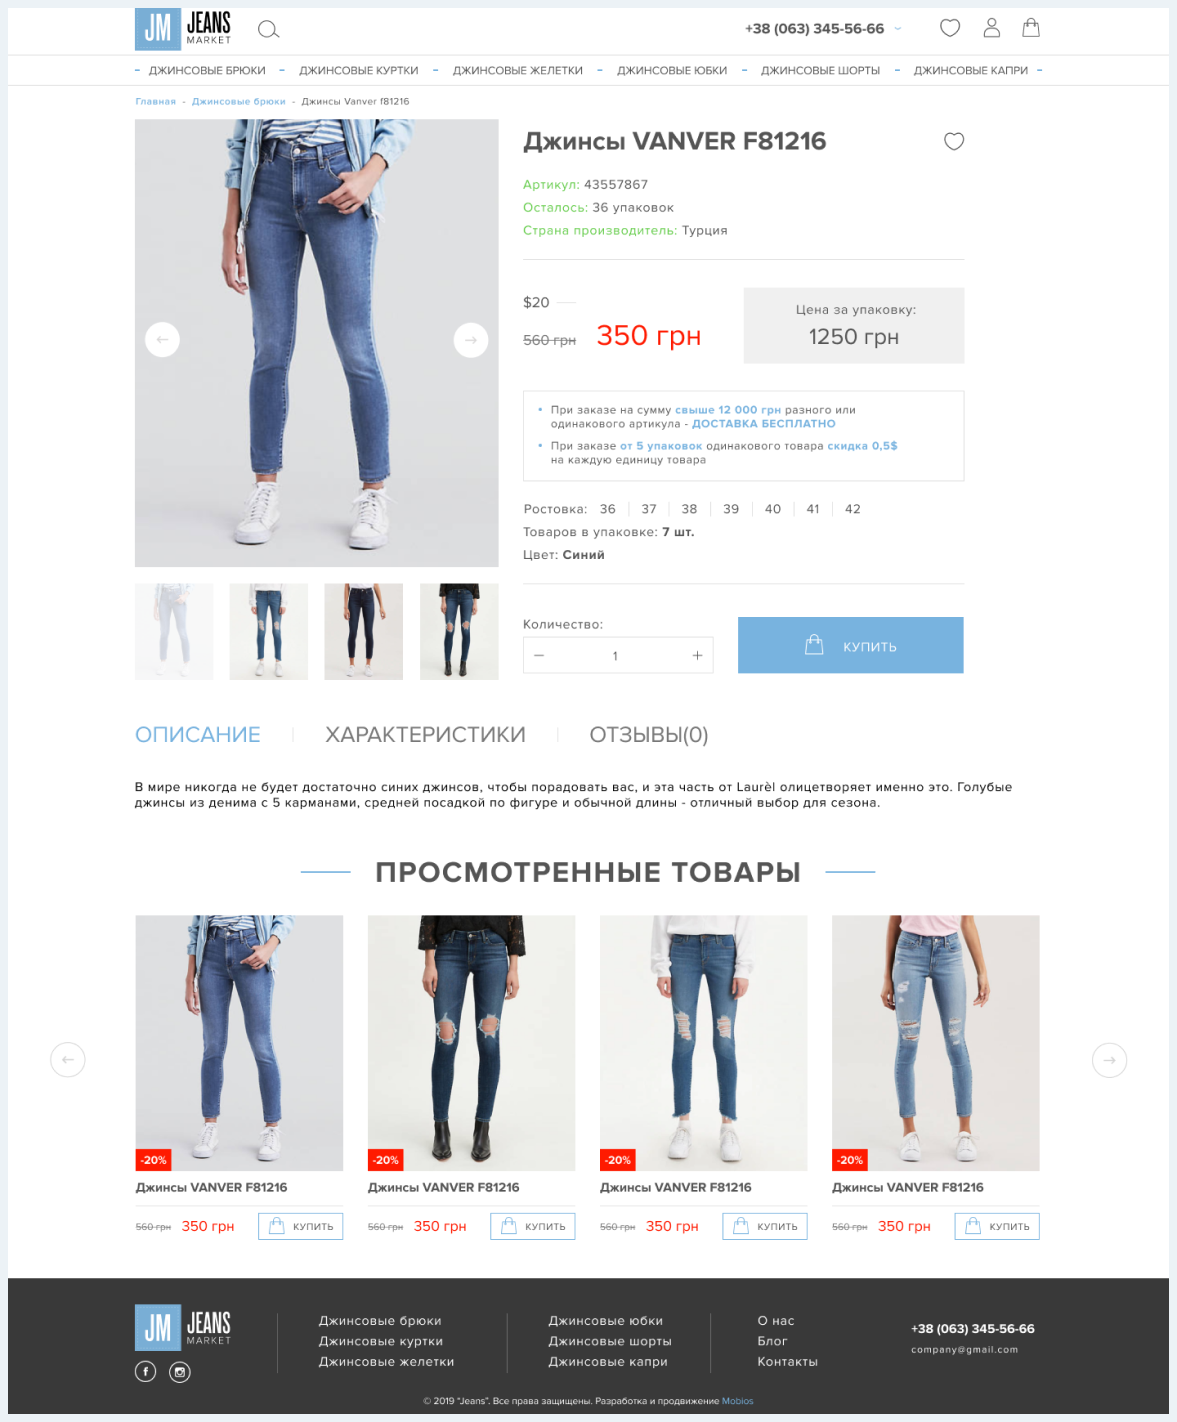 product-page__preview